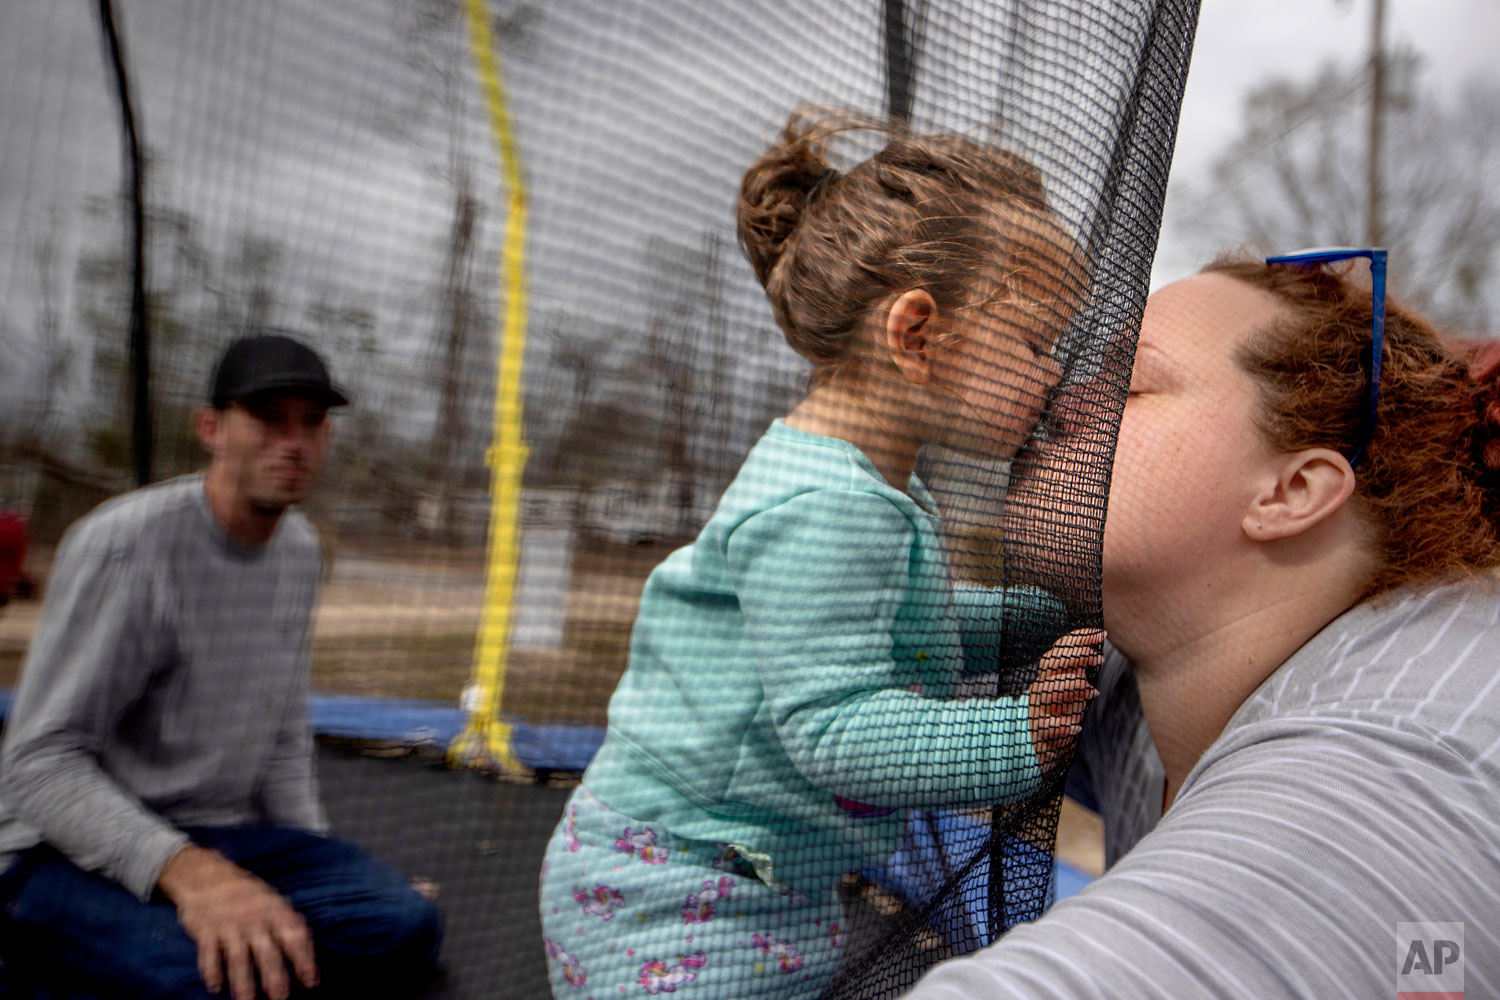 Mystie Gregory, right, kisses her twenty-month-old daughter Neala as her fiancé Gary LaPlant looks on while playing on a trampoline in the backyard where several local residents are living in tents after becoming homeless from Hurricane Michael in Youngstown, Fla, Wednesday, Jan. 23, 2019. Gregory said they left their apartment for several days to take a break from living without electricity. When they got back, she says, it had been rented to another family. (AP Photo/David Goldman)